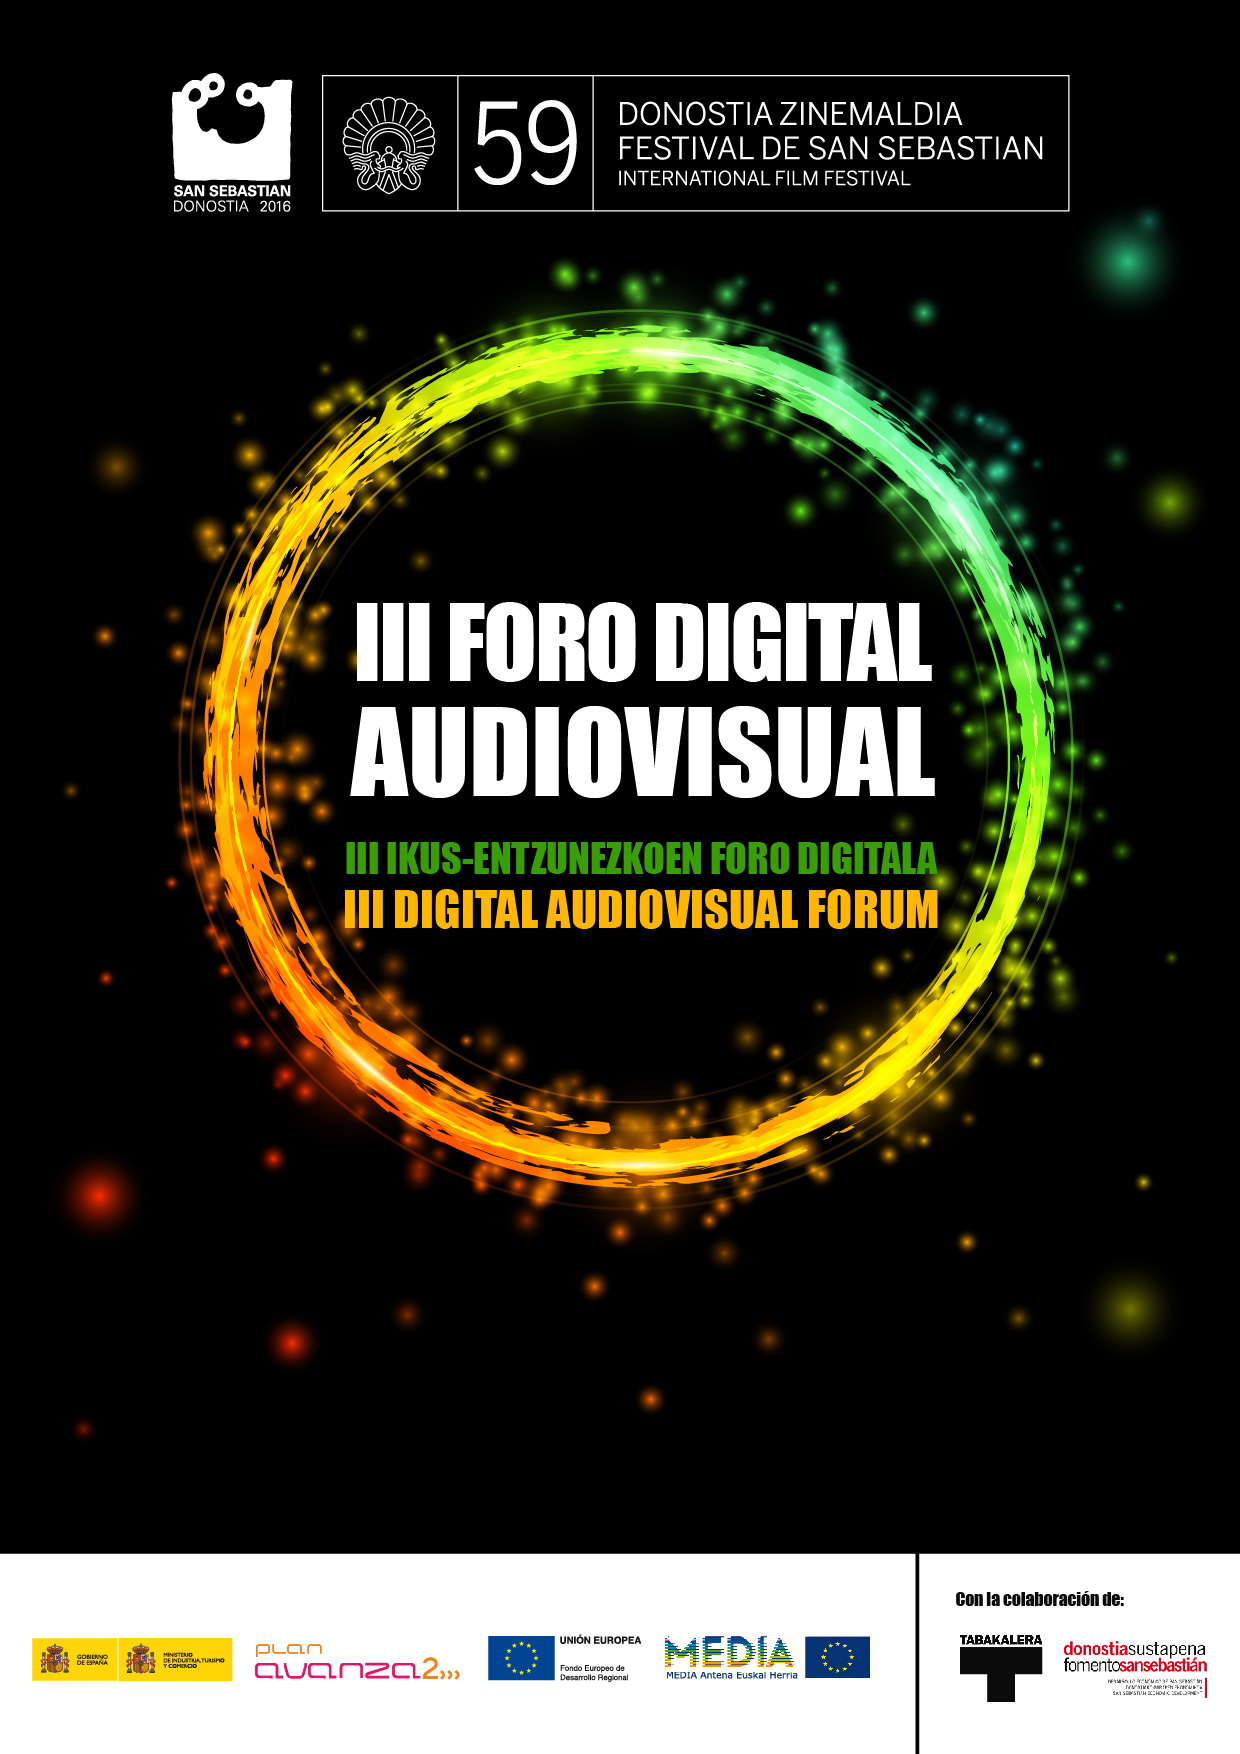 III Foro Digital Audiovisual